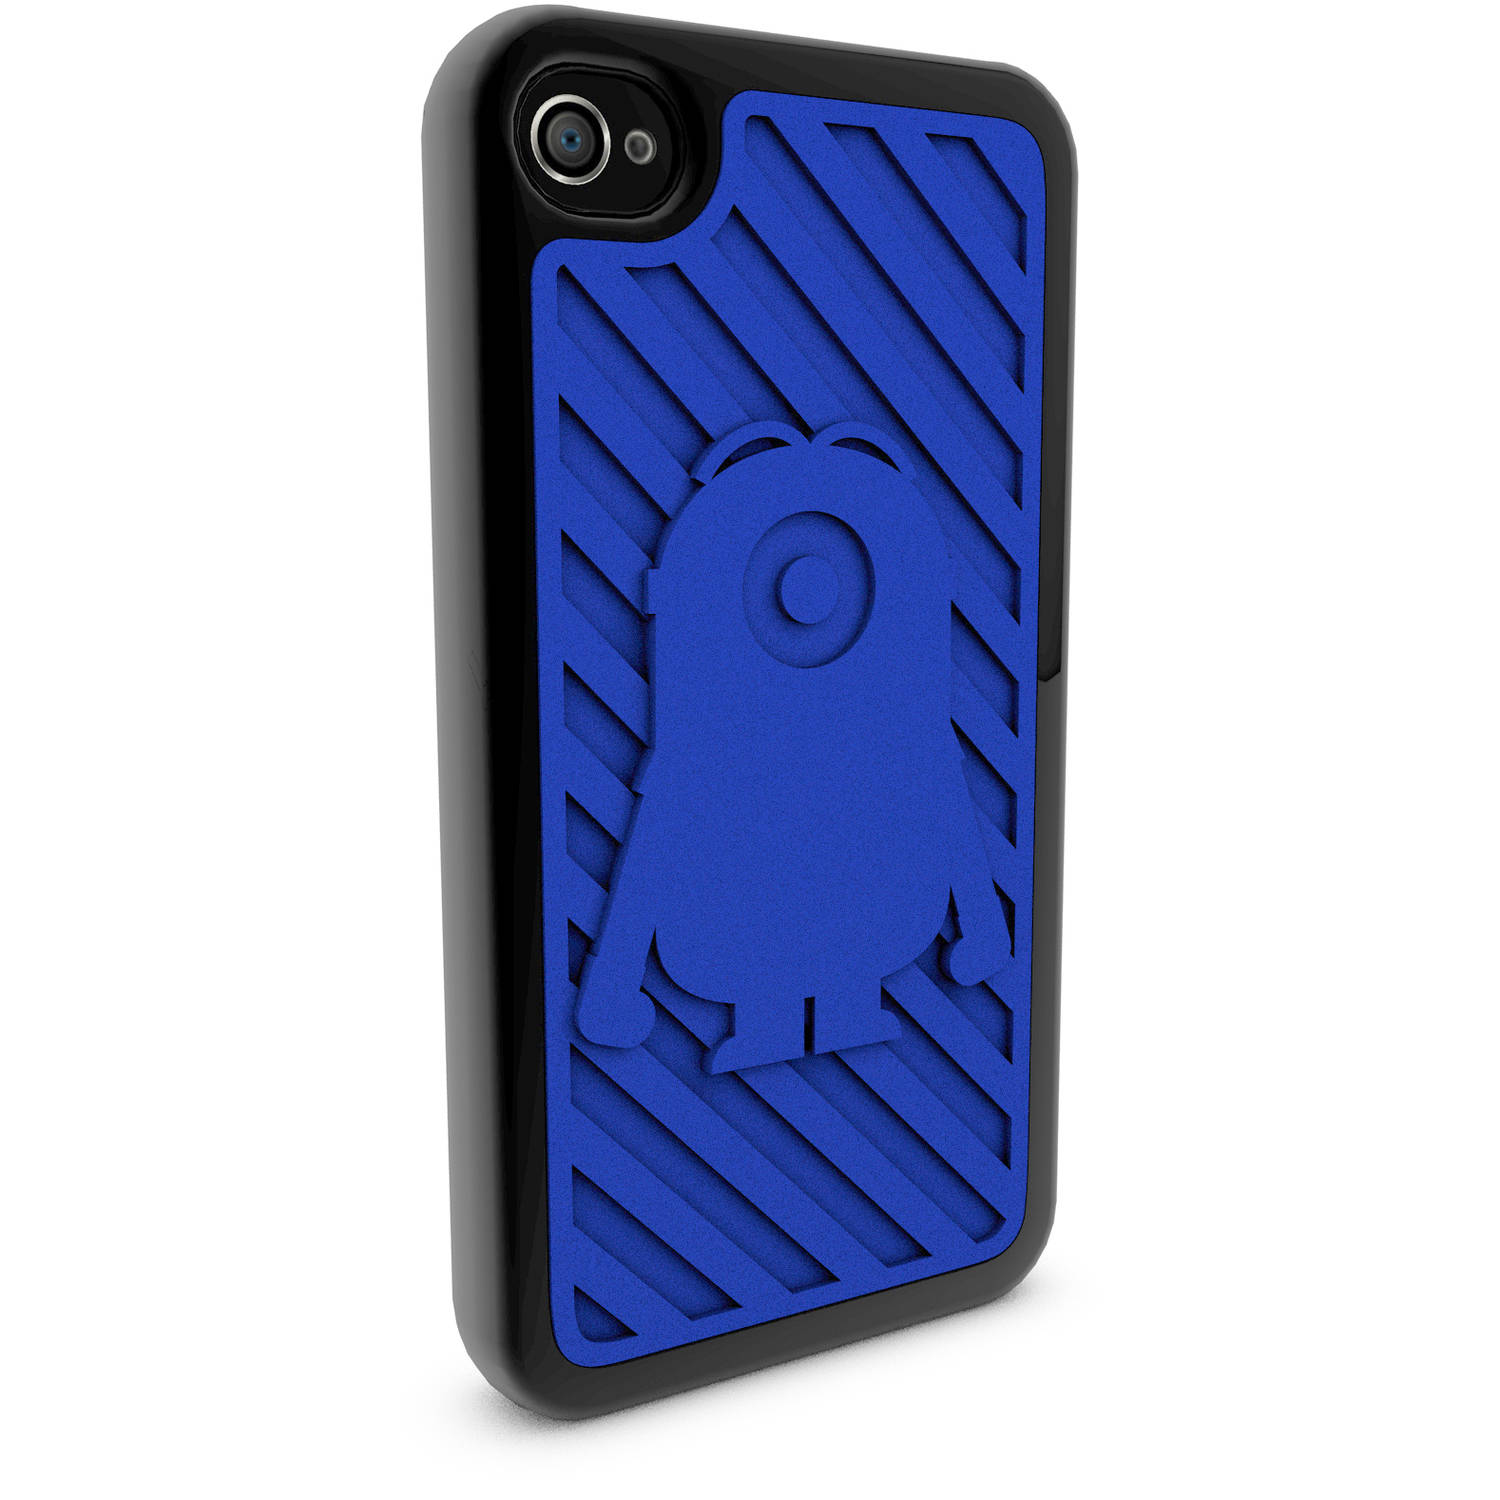 Apple iPhone 4 and 4S Custom Stuart Silhouette 3D Printed Phone Case - Despicable Me - Stuart Silhouette